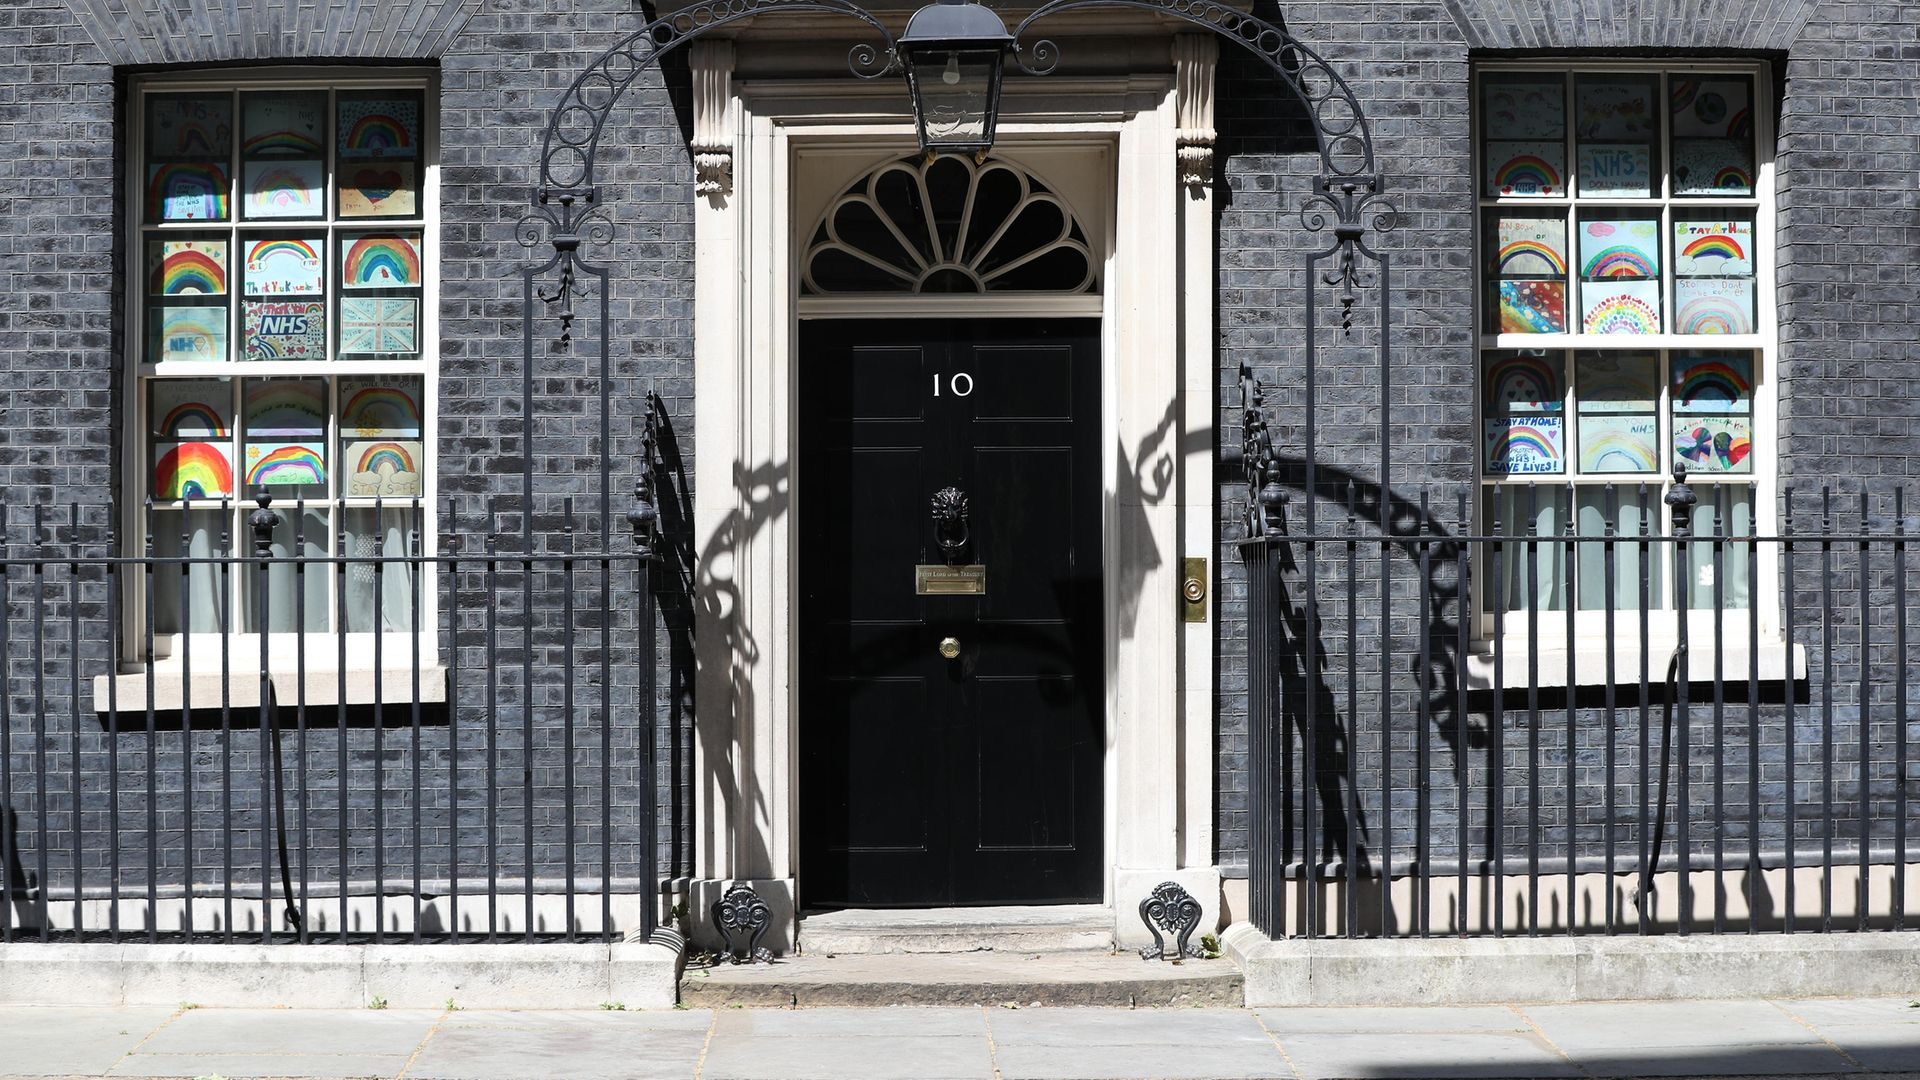 The door to 10 Downing Street - Credit: PA